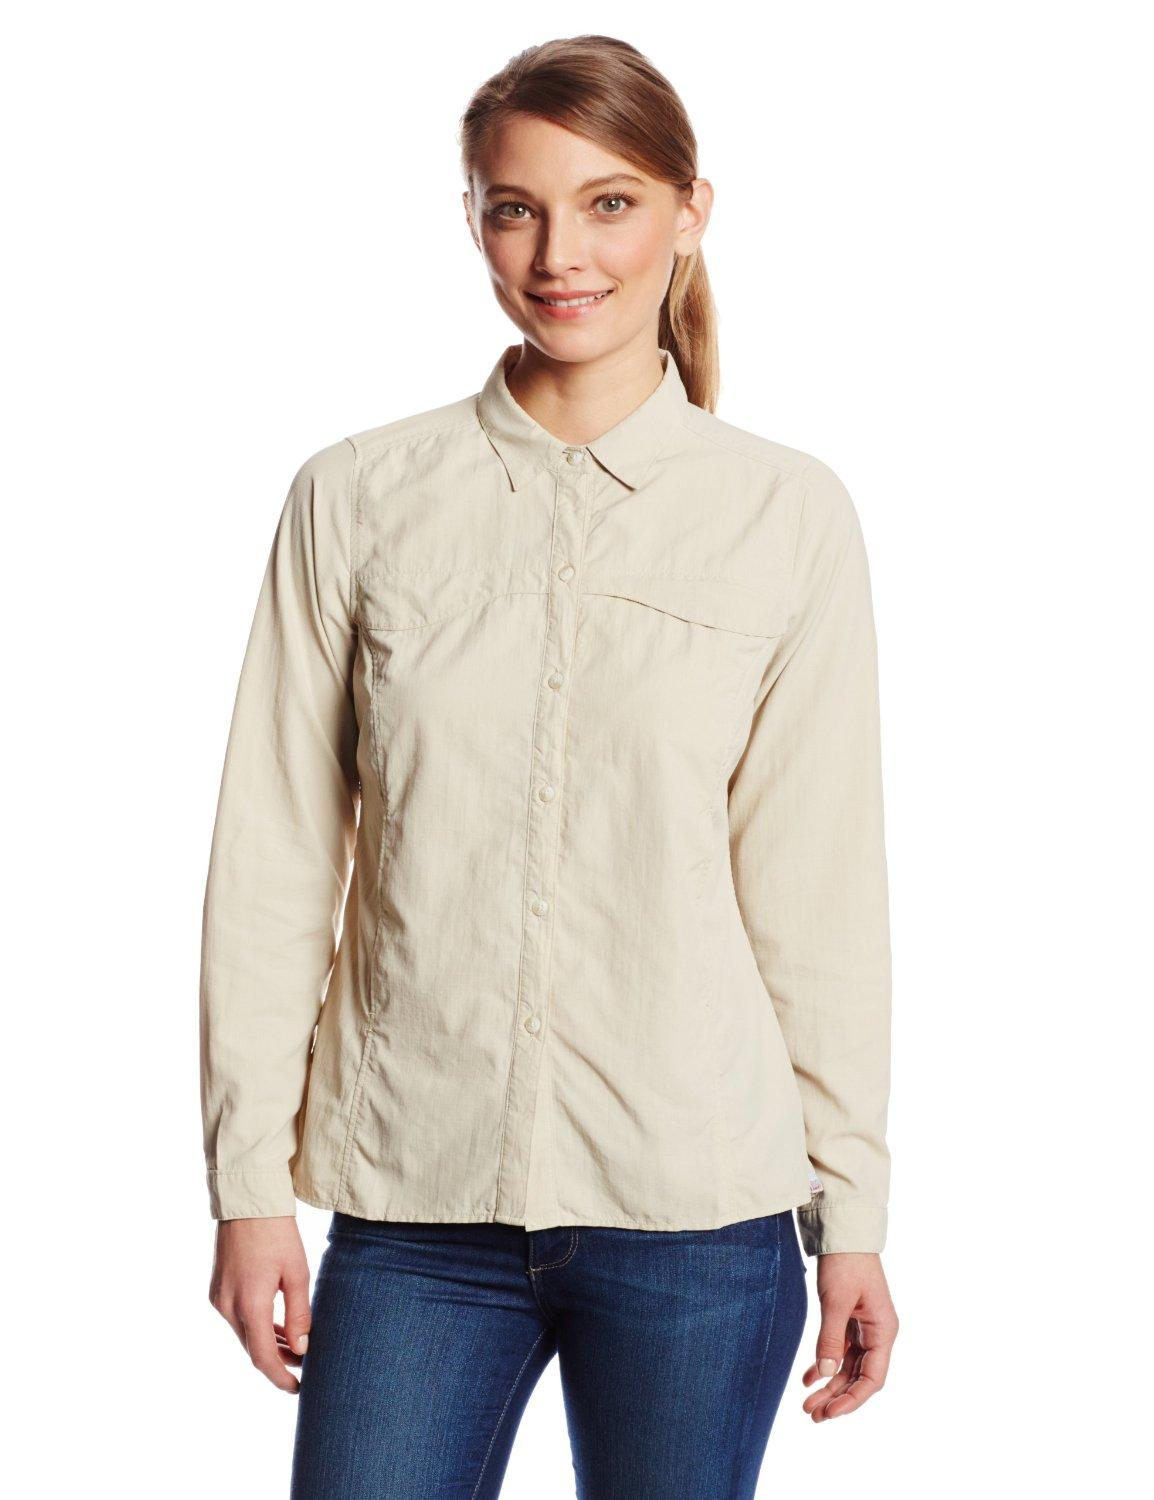 ExOfficio Women's Bugsaway Breez'r Long Sleeve